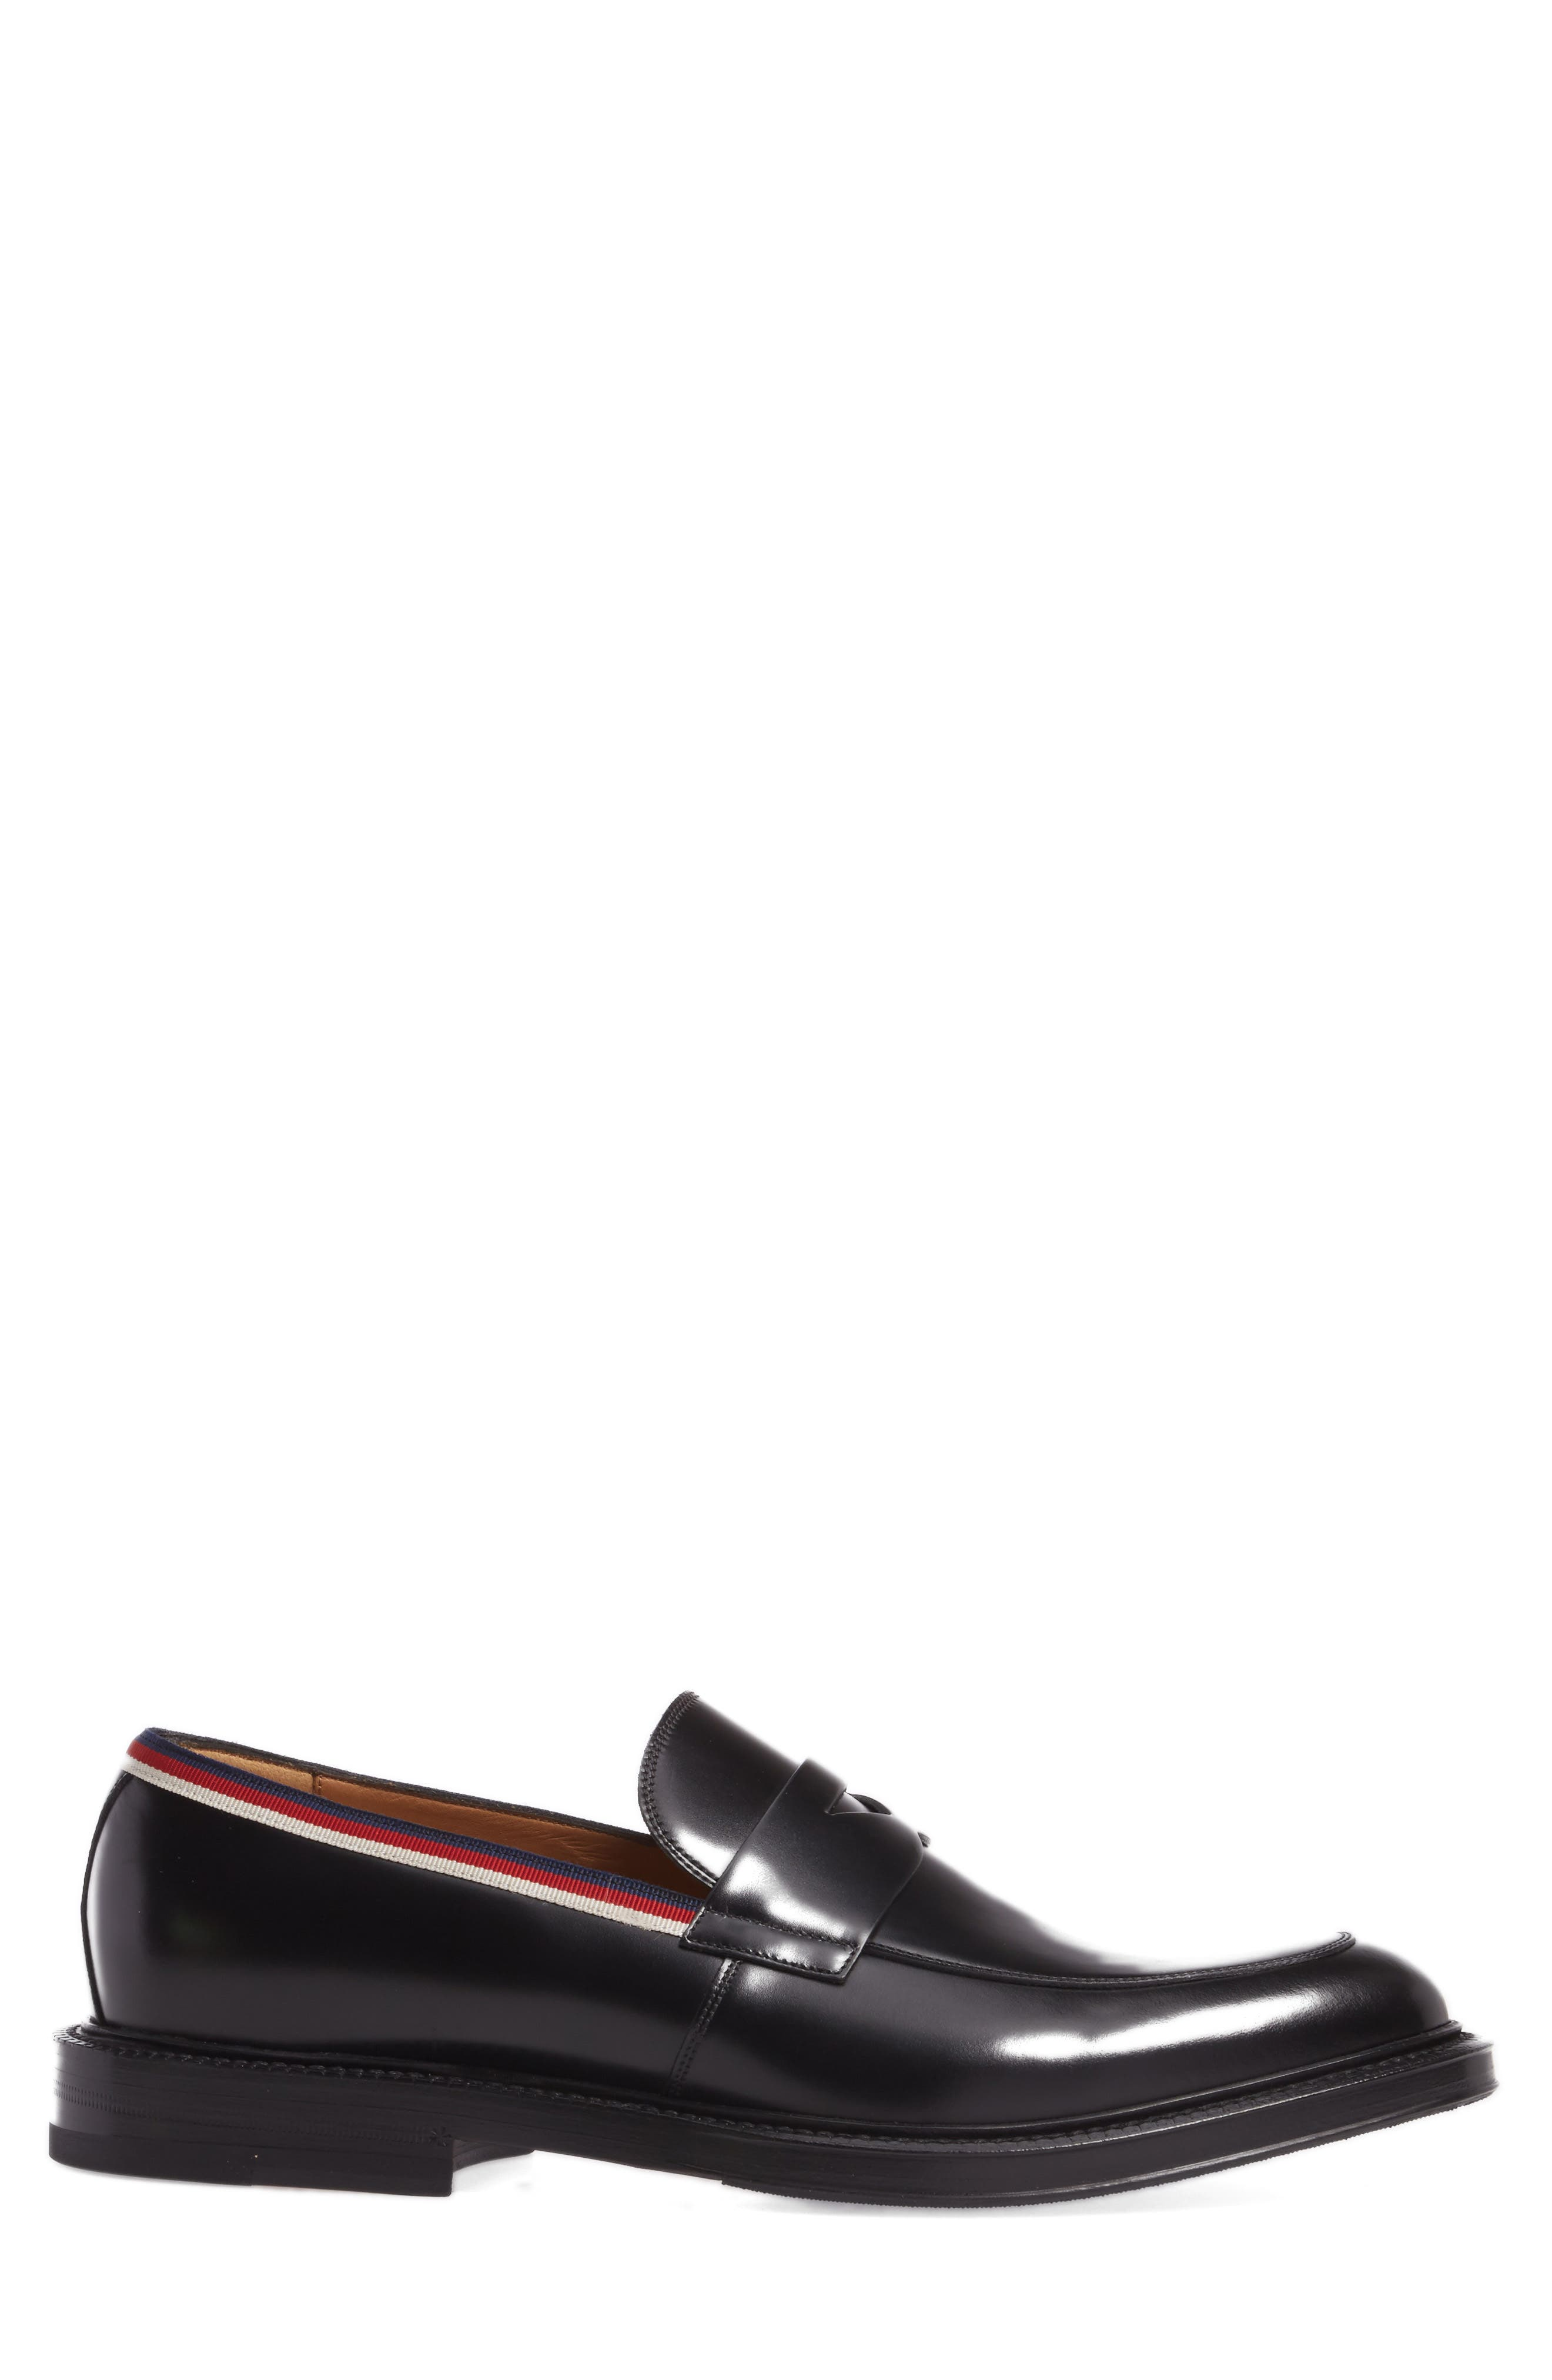 GUCCI,                             Beyond Penny Loafer,                             Alternate thumbnail 3, color,                             007